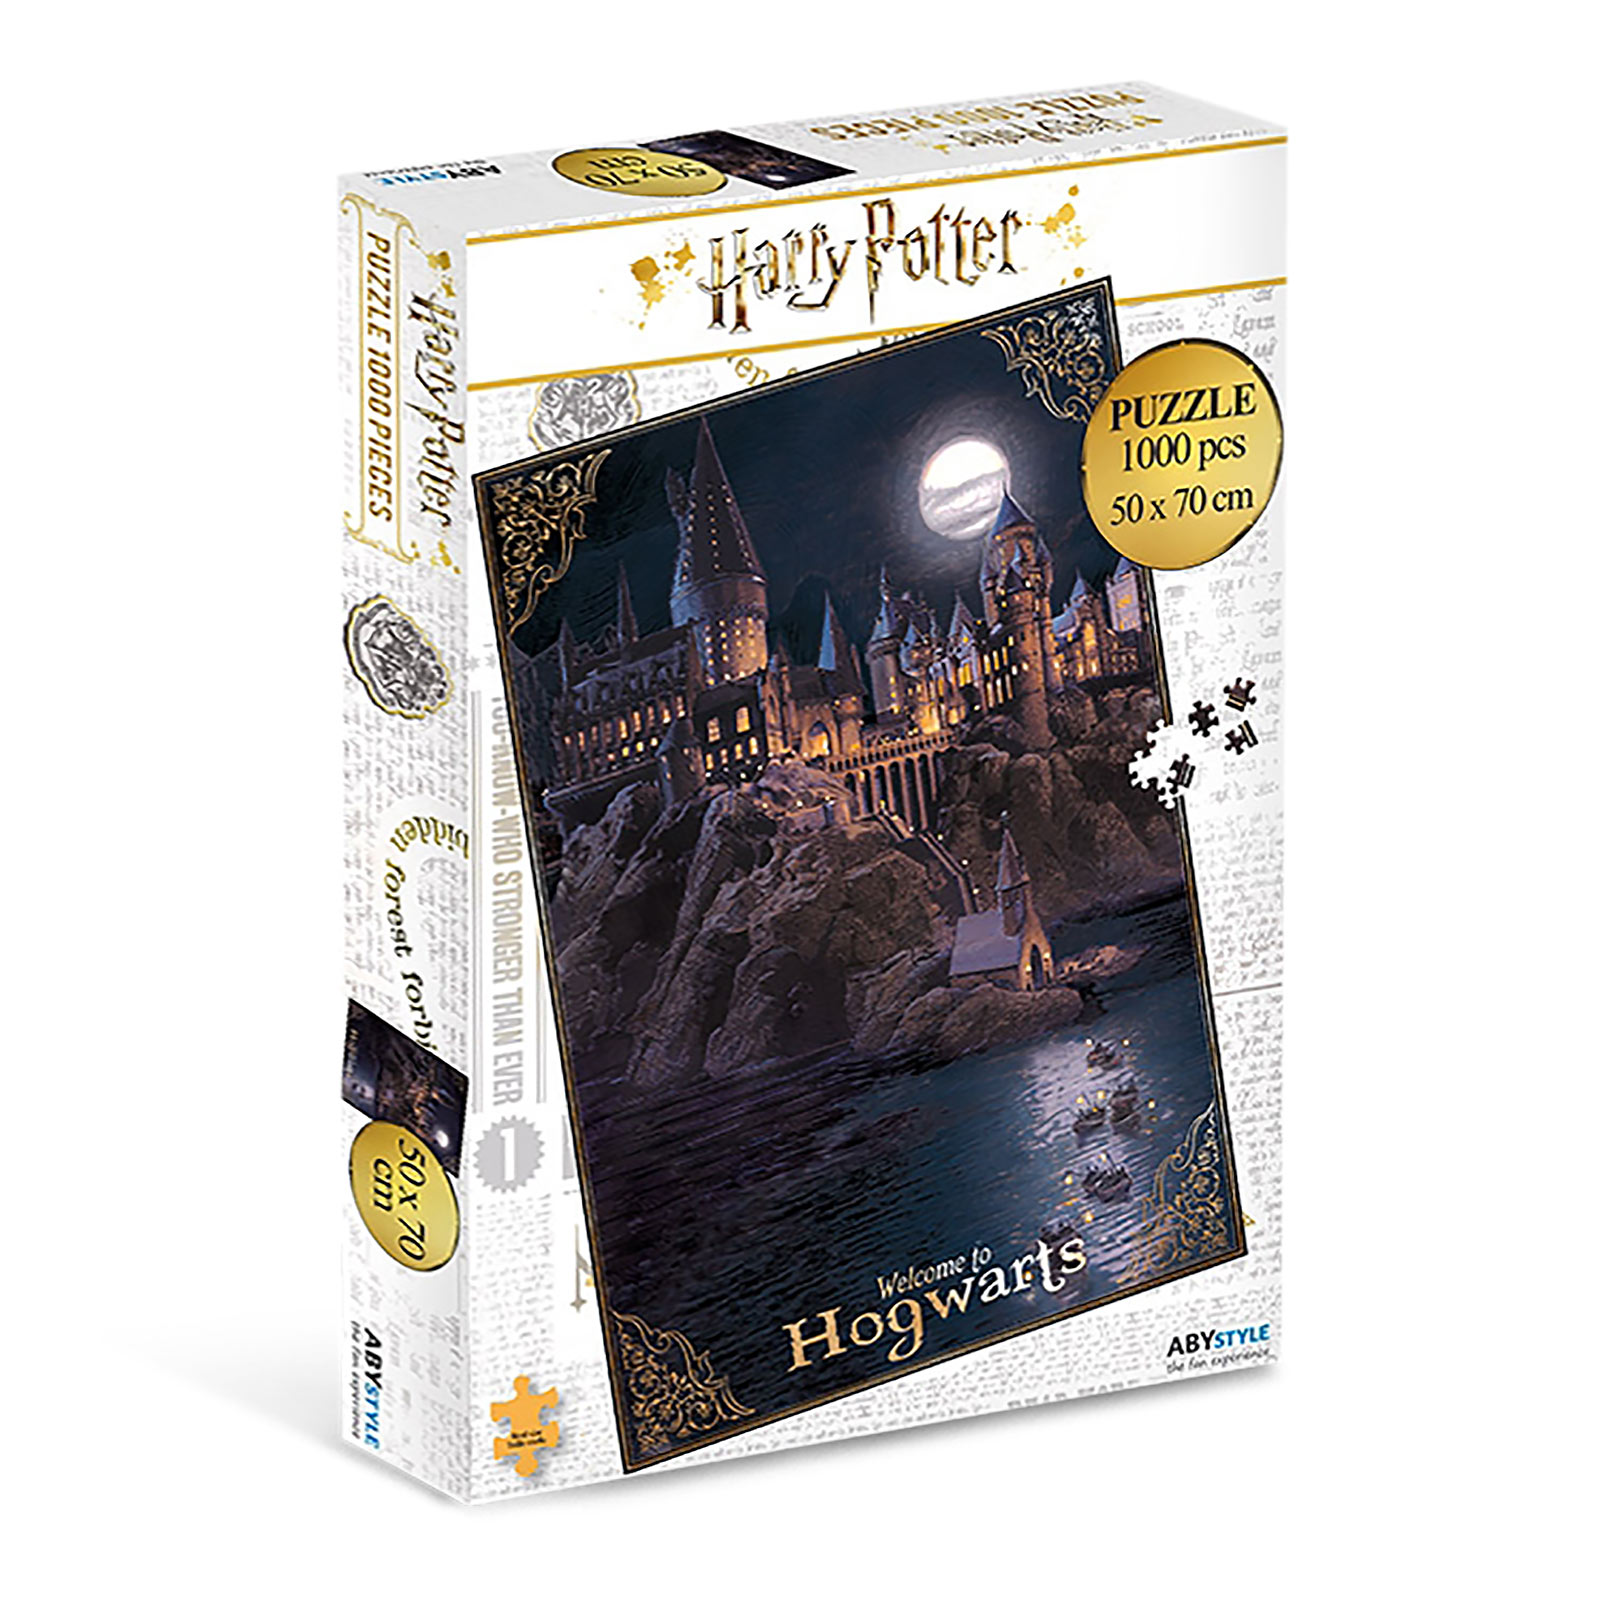 Harry Potter - Welcome to Hogwarts Puzzle